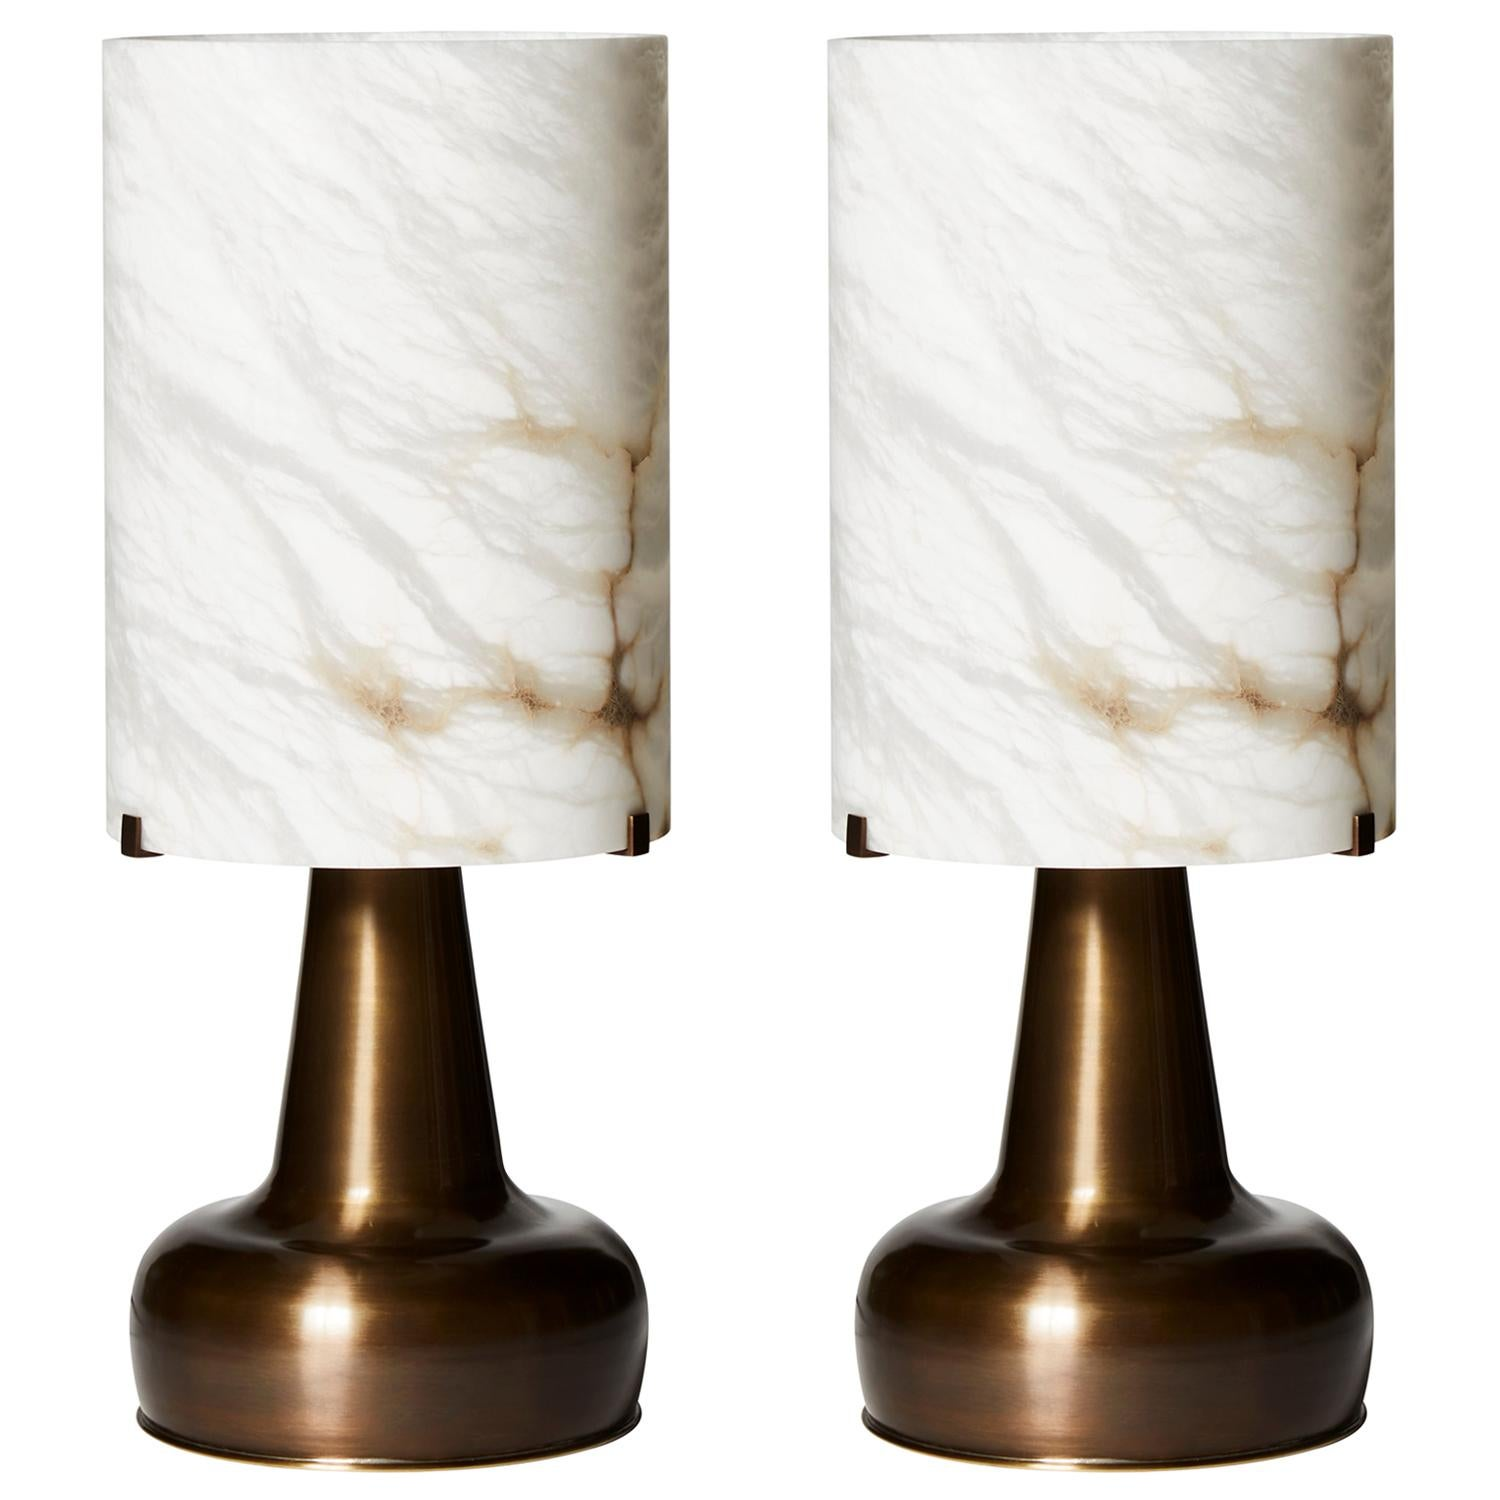 Glustin Luminaires Pear Shaped Brass Table Lamps and Alabaster Shades